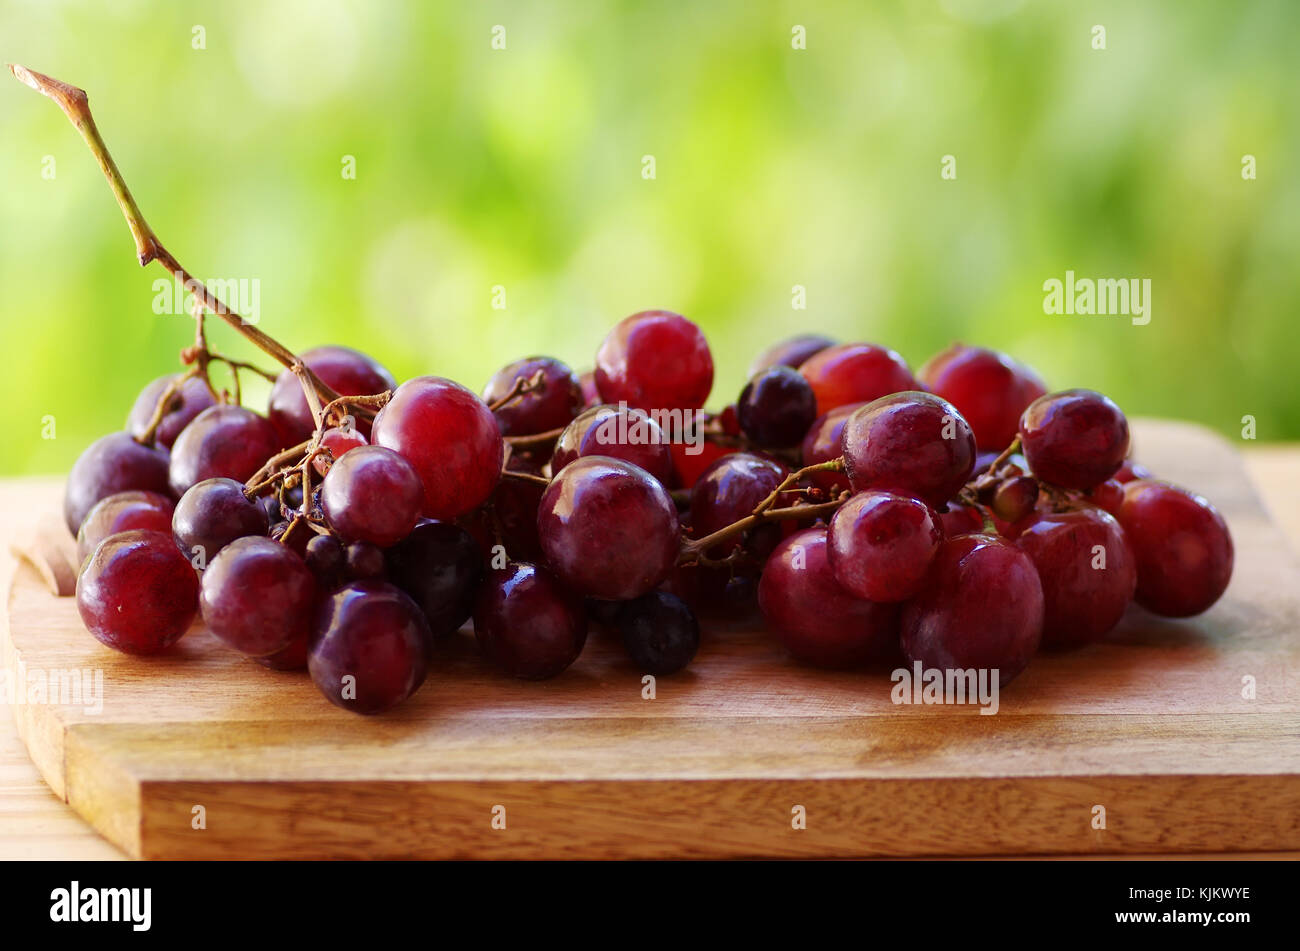 Bunch of red grapes on table, green background Stock Photo